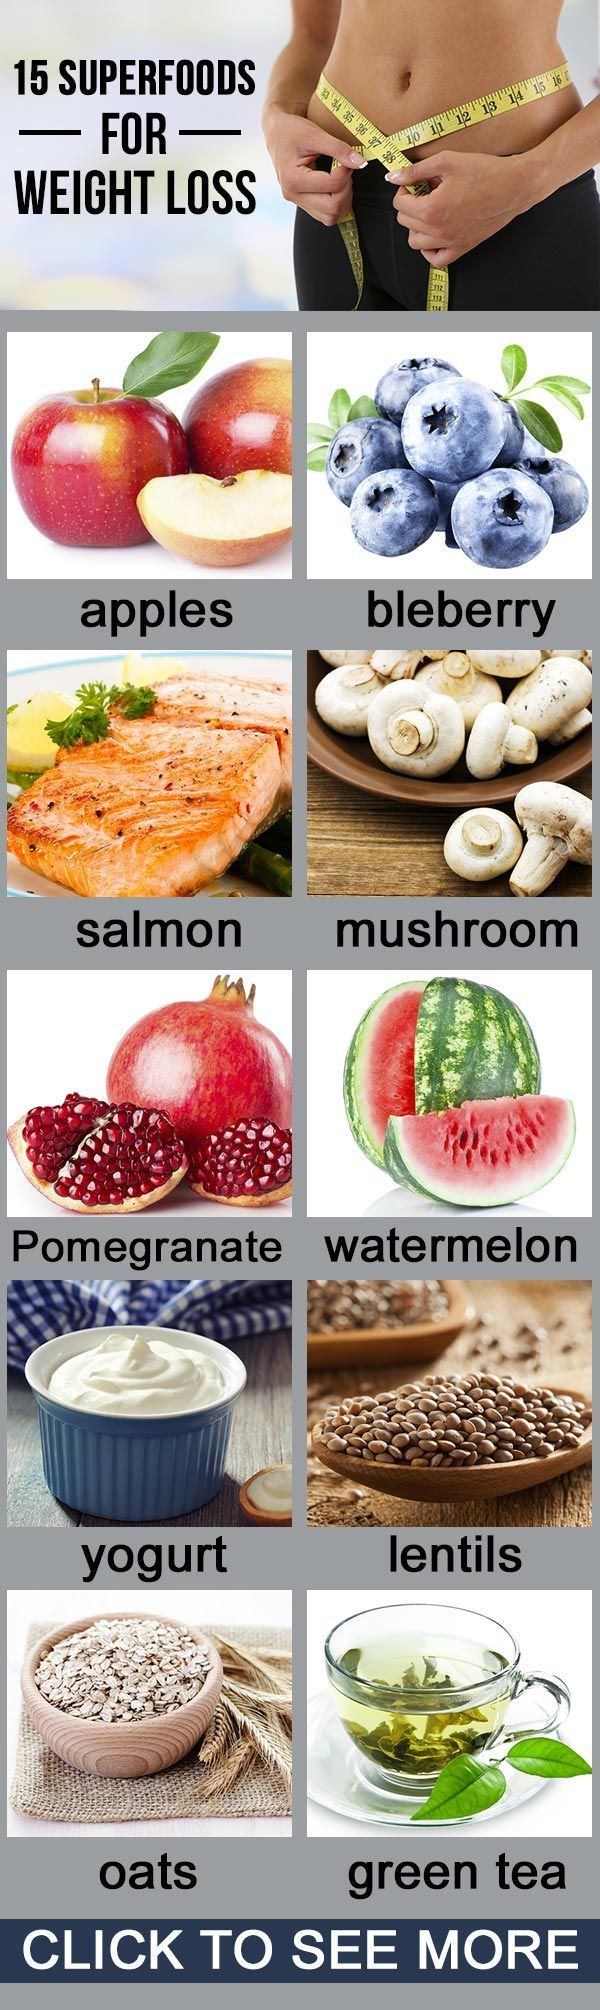 31 Superfoods For Weight Loss Backed By Science images